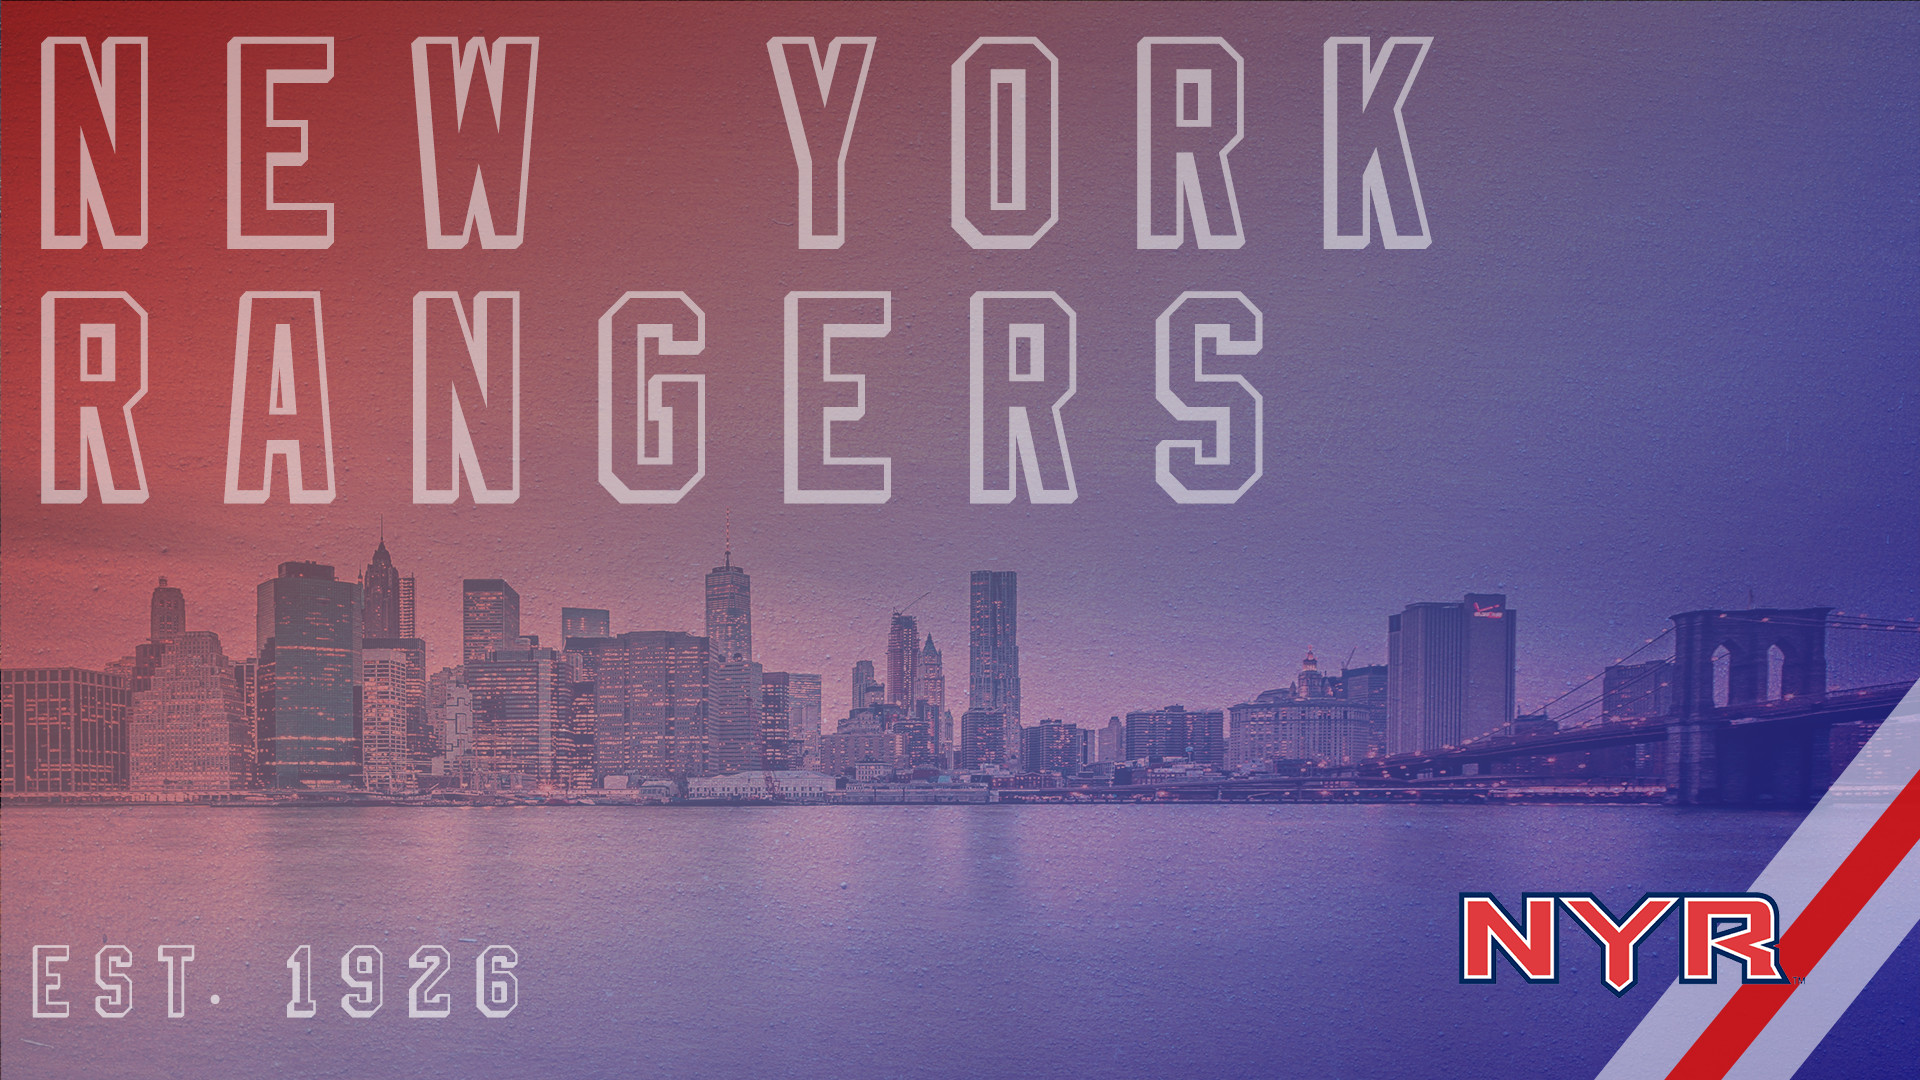 New York Rangers Hd Wallpaper Posted By Samantha Thompson